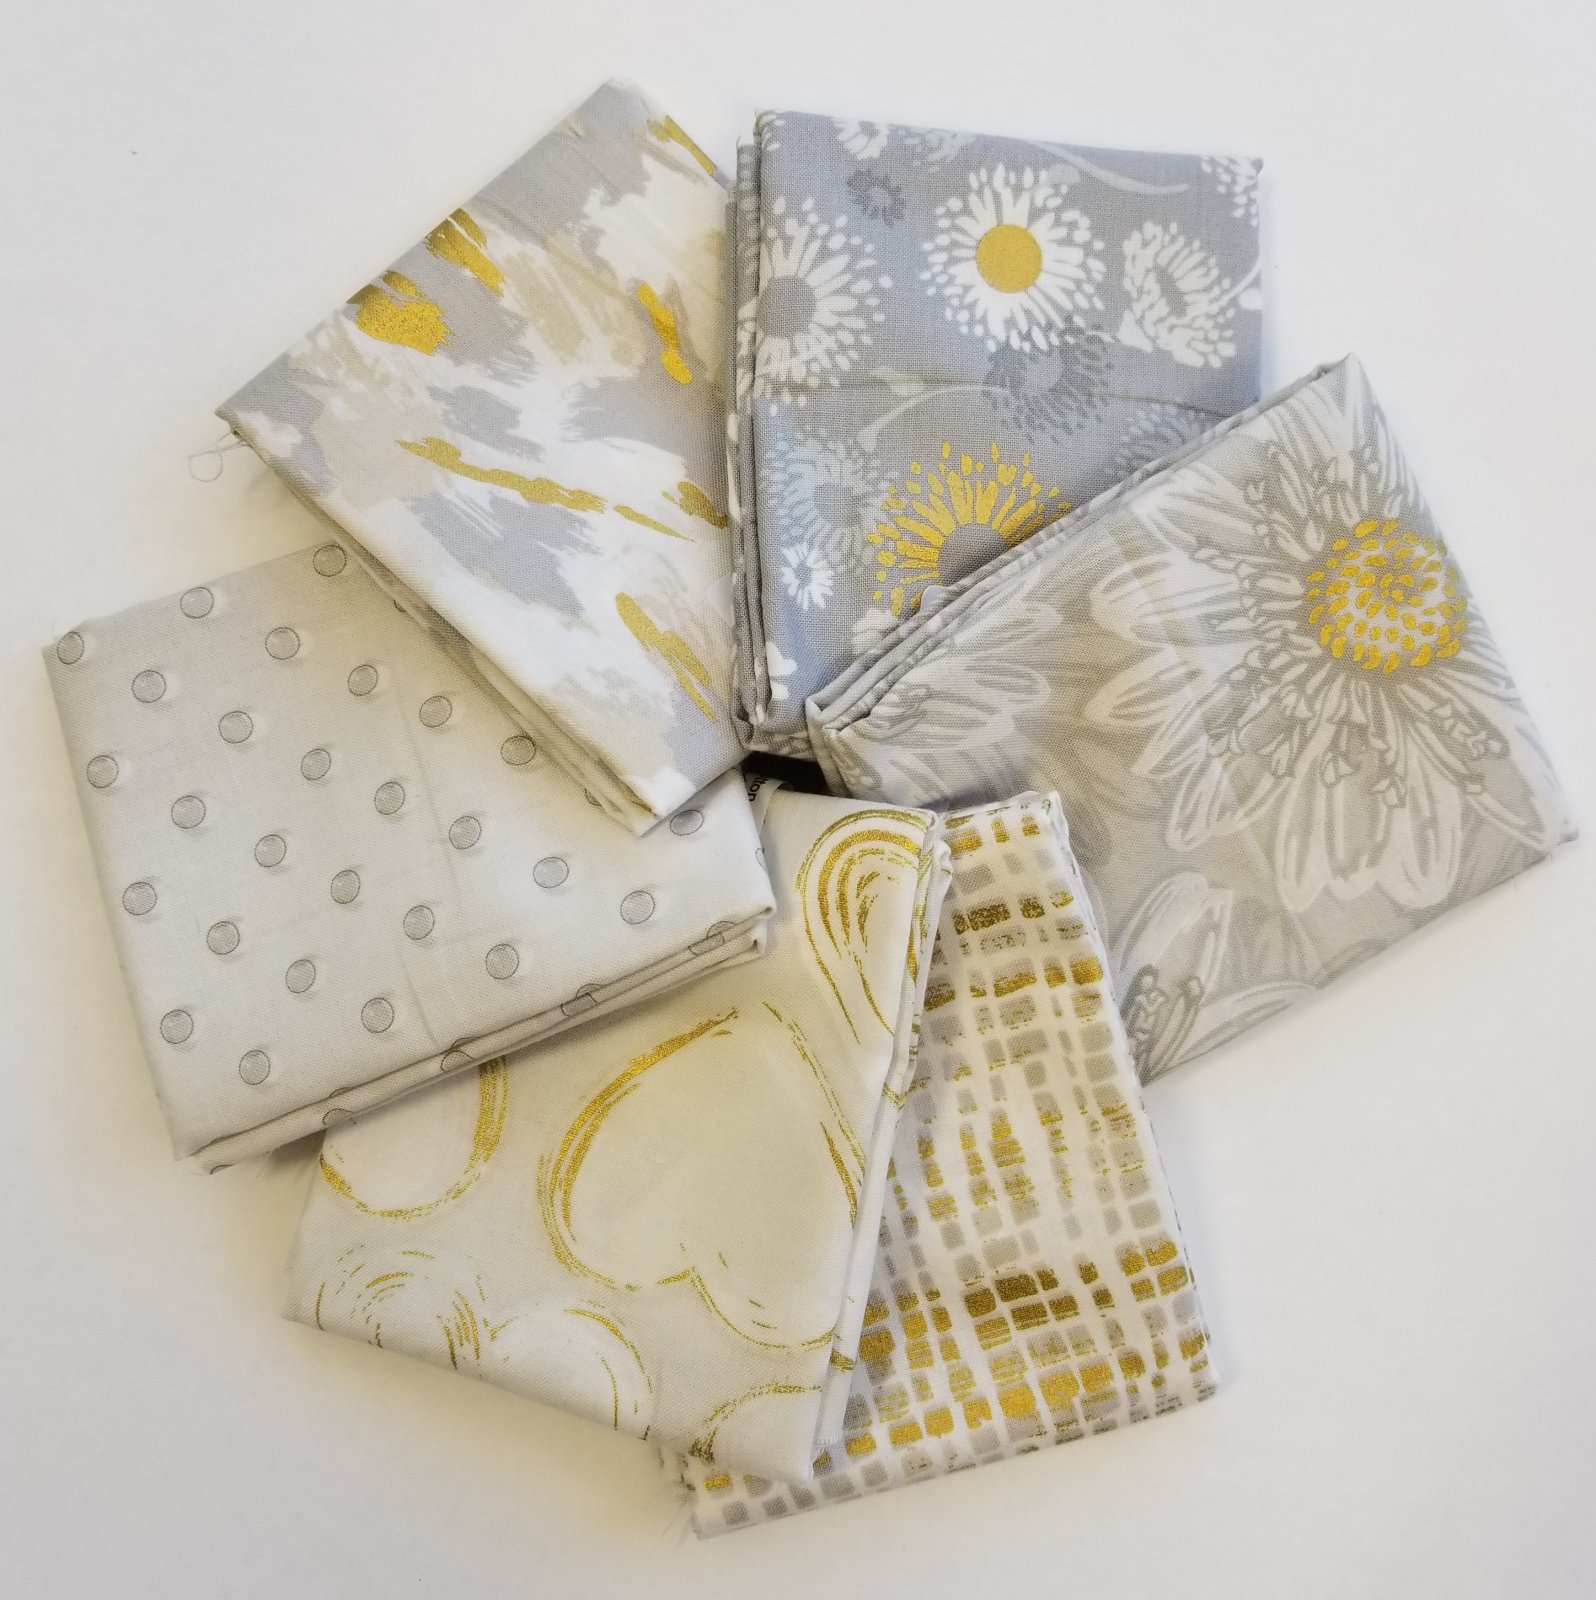 Shiny Objects Bundle of 6 Fat Quarters